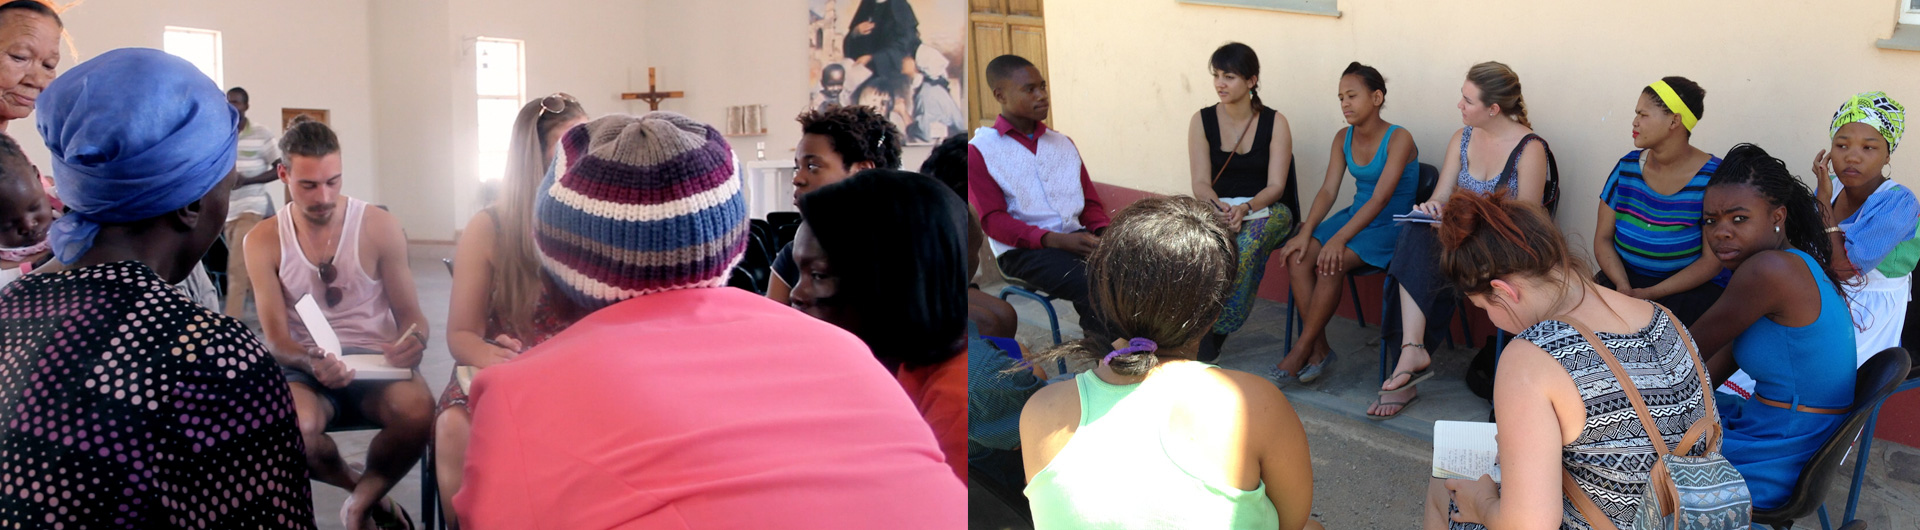 Images depict students engaged in discussions with community members at the church. Students can be seen taking fieldnotes.